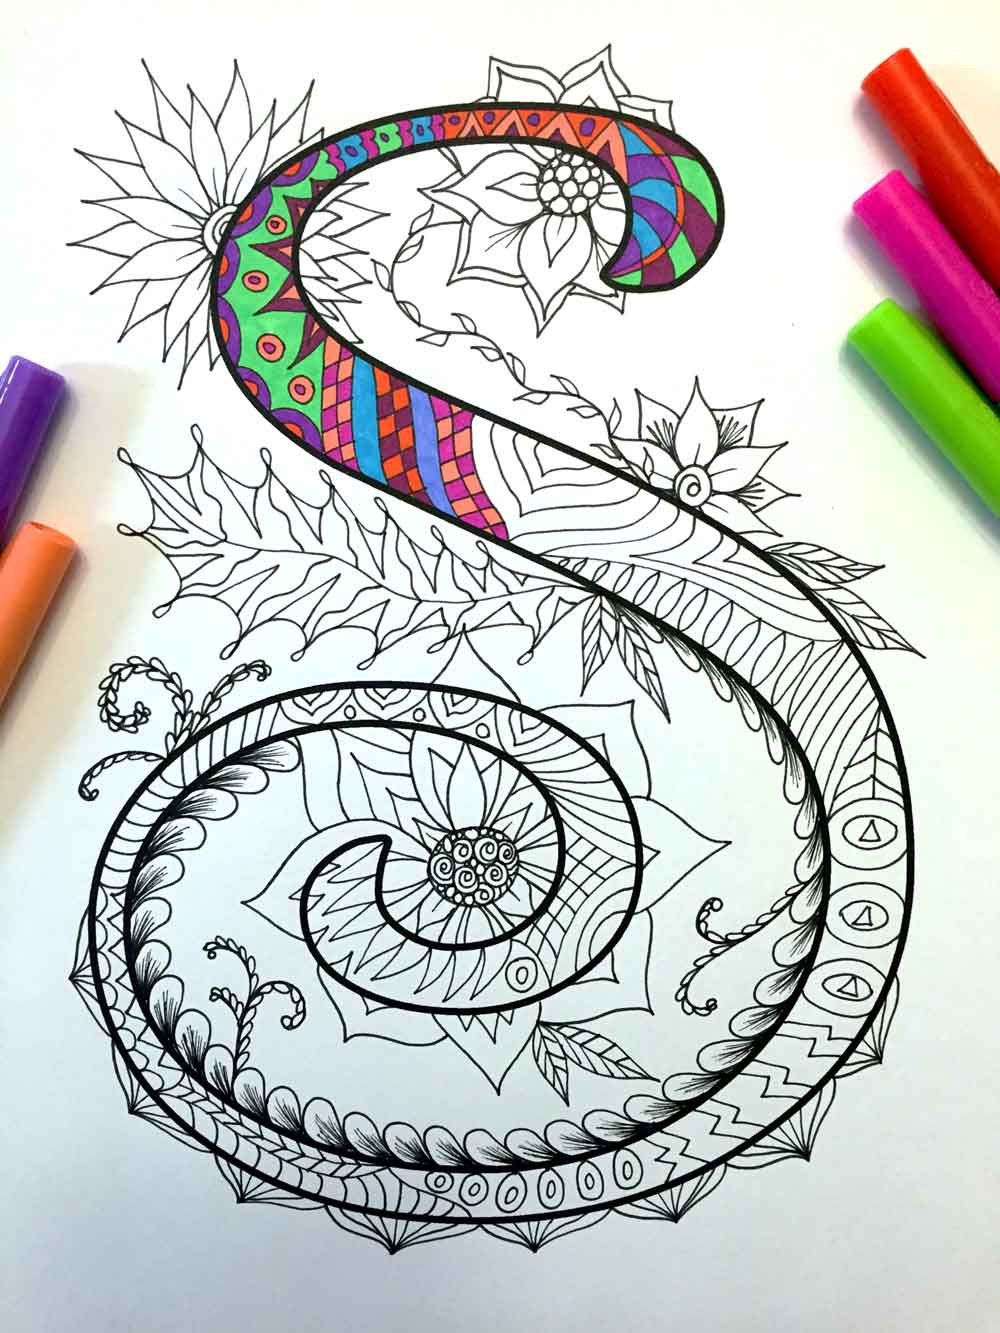 Letter S Zentangle Inspired by the font Harrington por DJPenscript ...